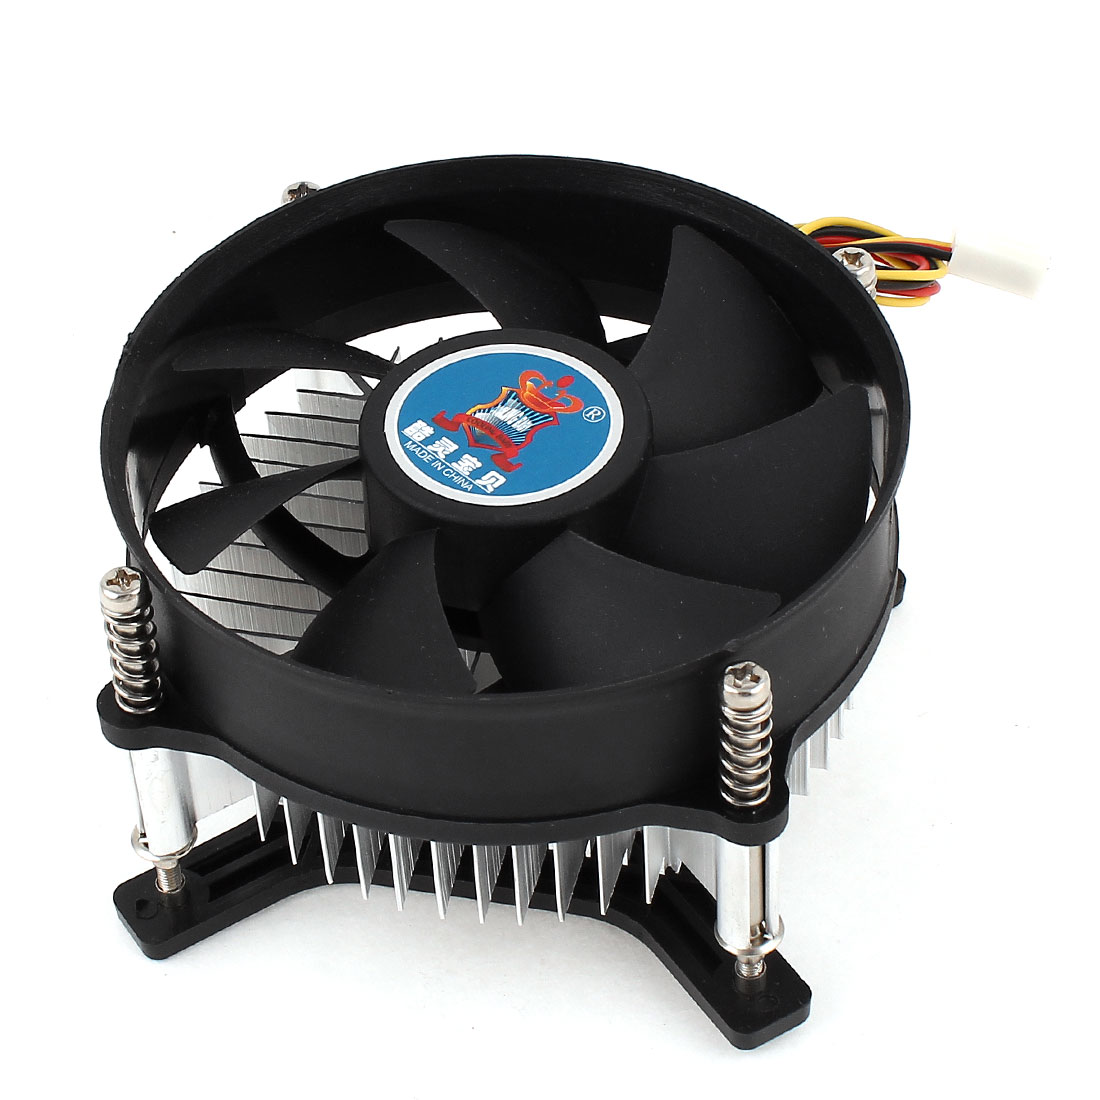 Desktop DC 12V PC 2000RPM Speed CPU Cooling Fan Cooler Heatsink Black